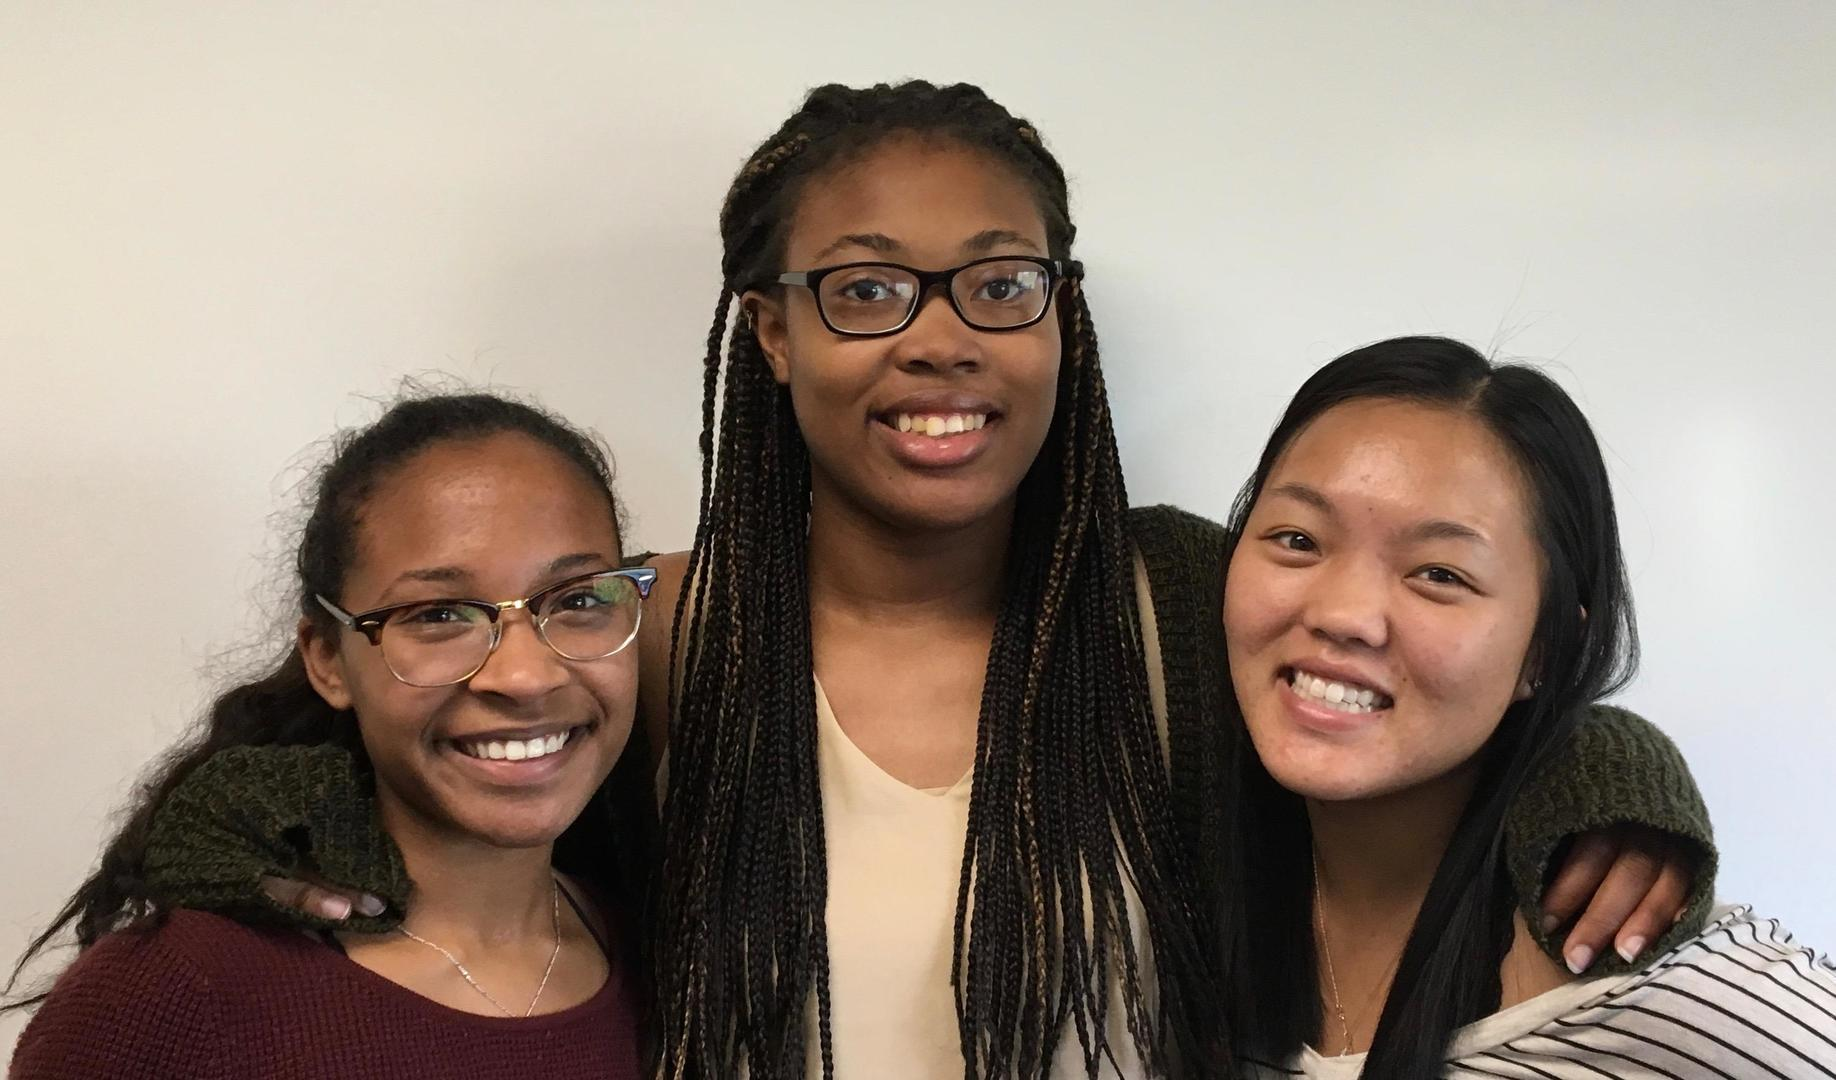 Three students smile and pose for a photo.